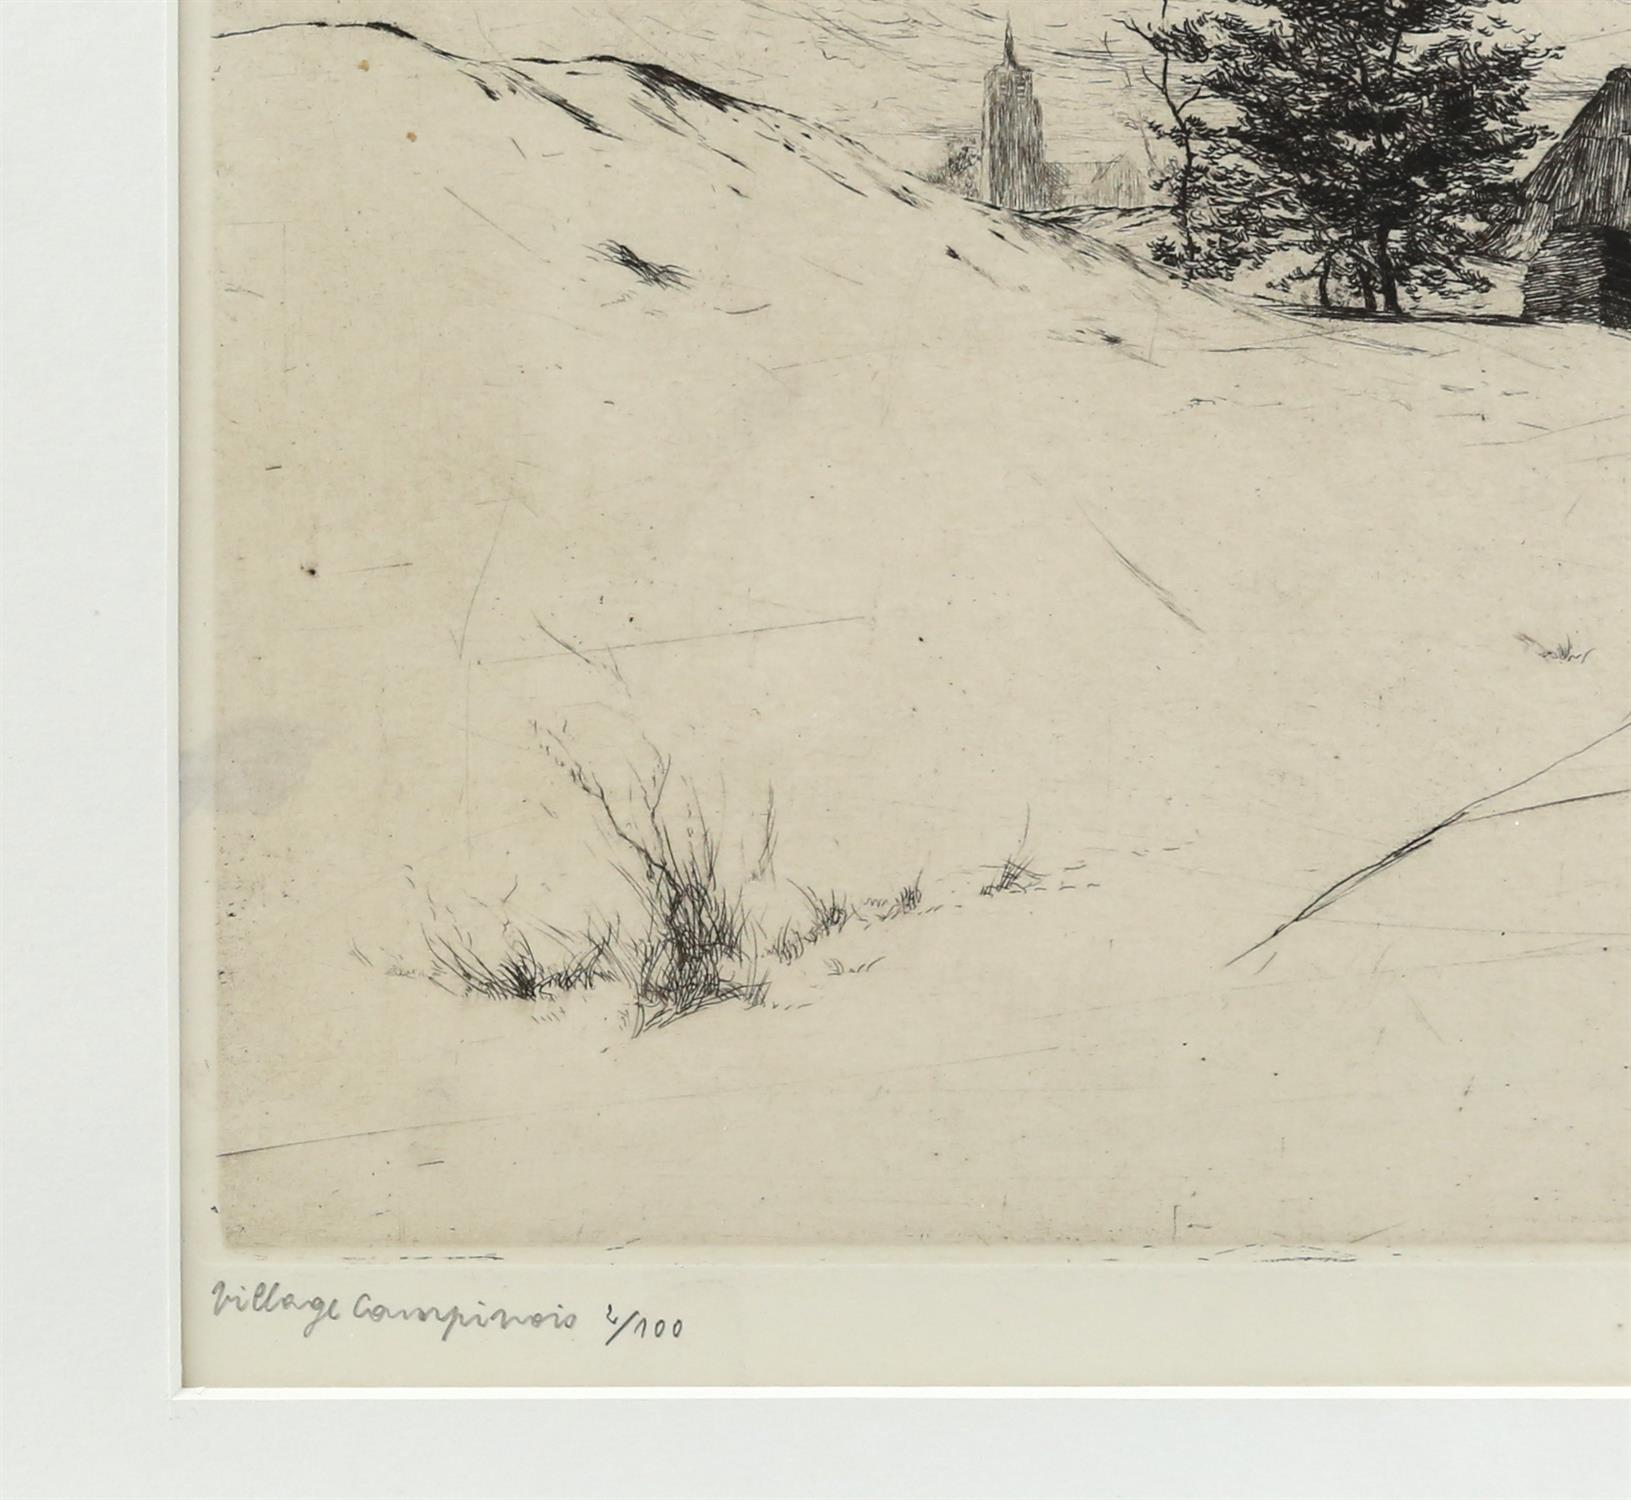 Jos van Hoof (Belgian, 1889-1937). 'Village Campinois', limited edition etching, signed, - Image 4 of 5